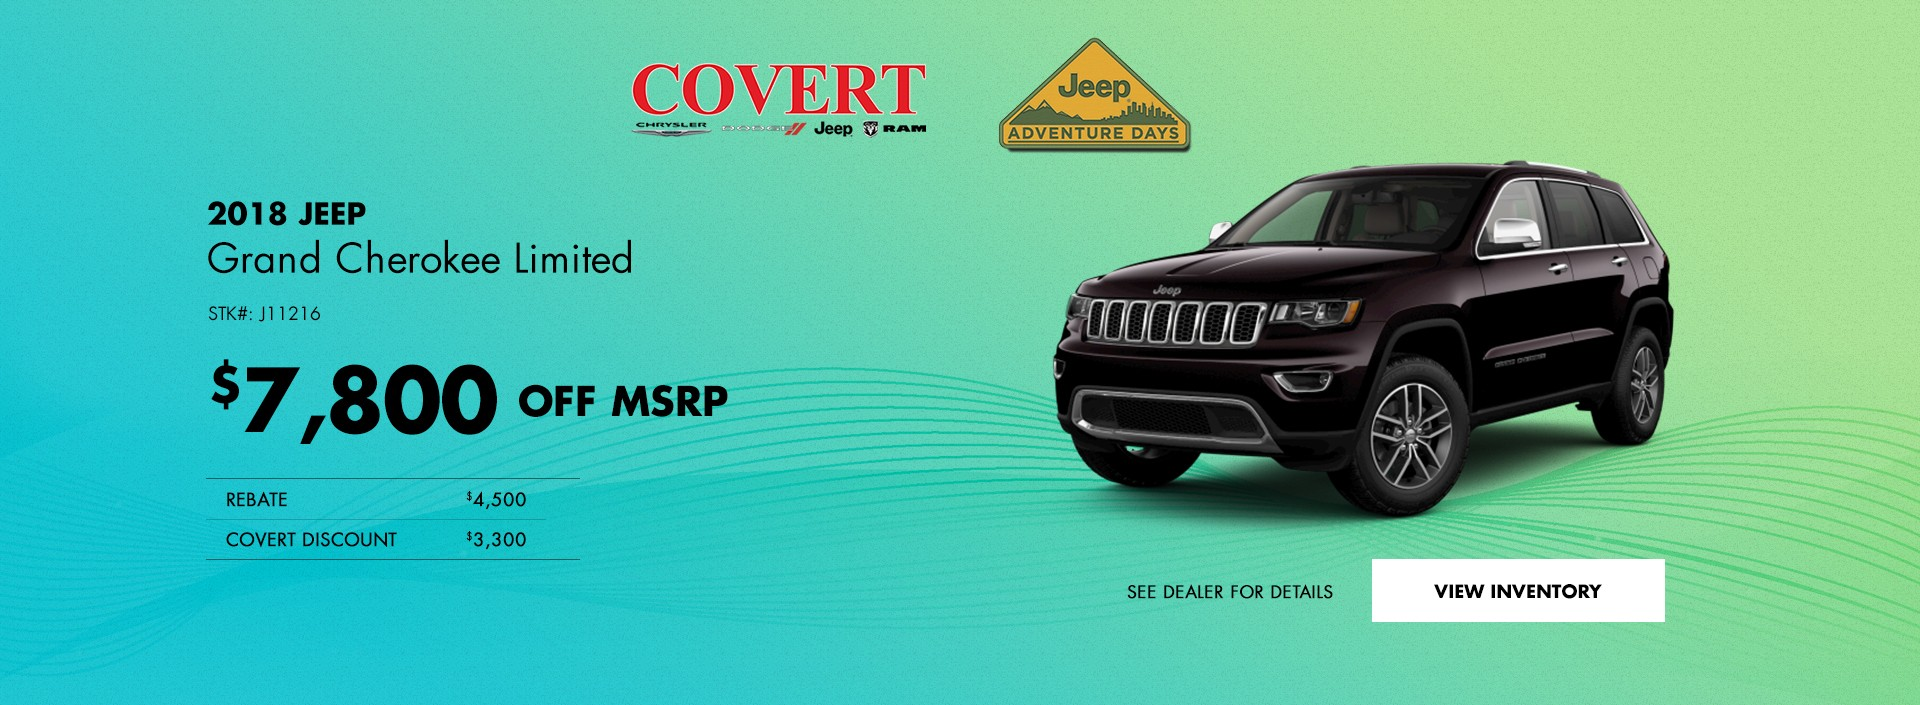 Covert Dodge Service >> New & Used Cars | Covert Chrysler Dodge Jeep | Austin, TX